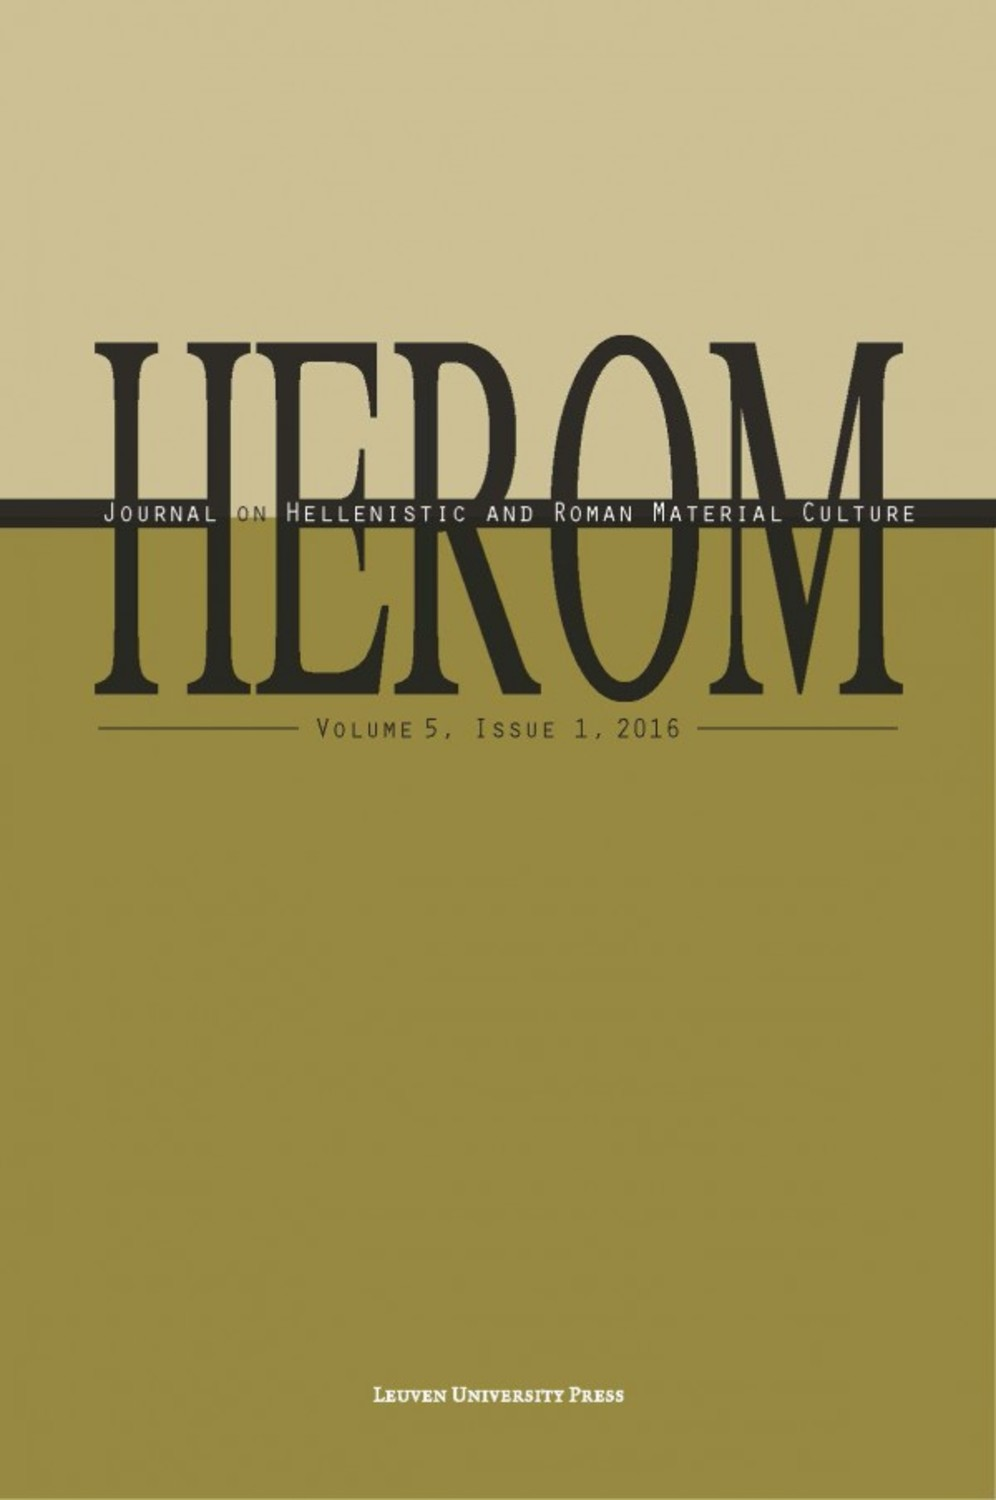 HEROM Volume 5 Issue 1, 2016